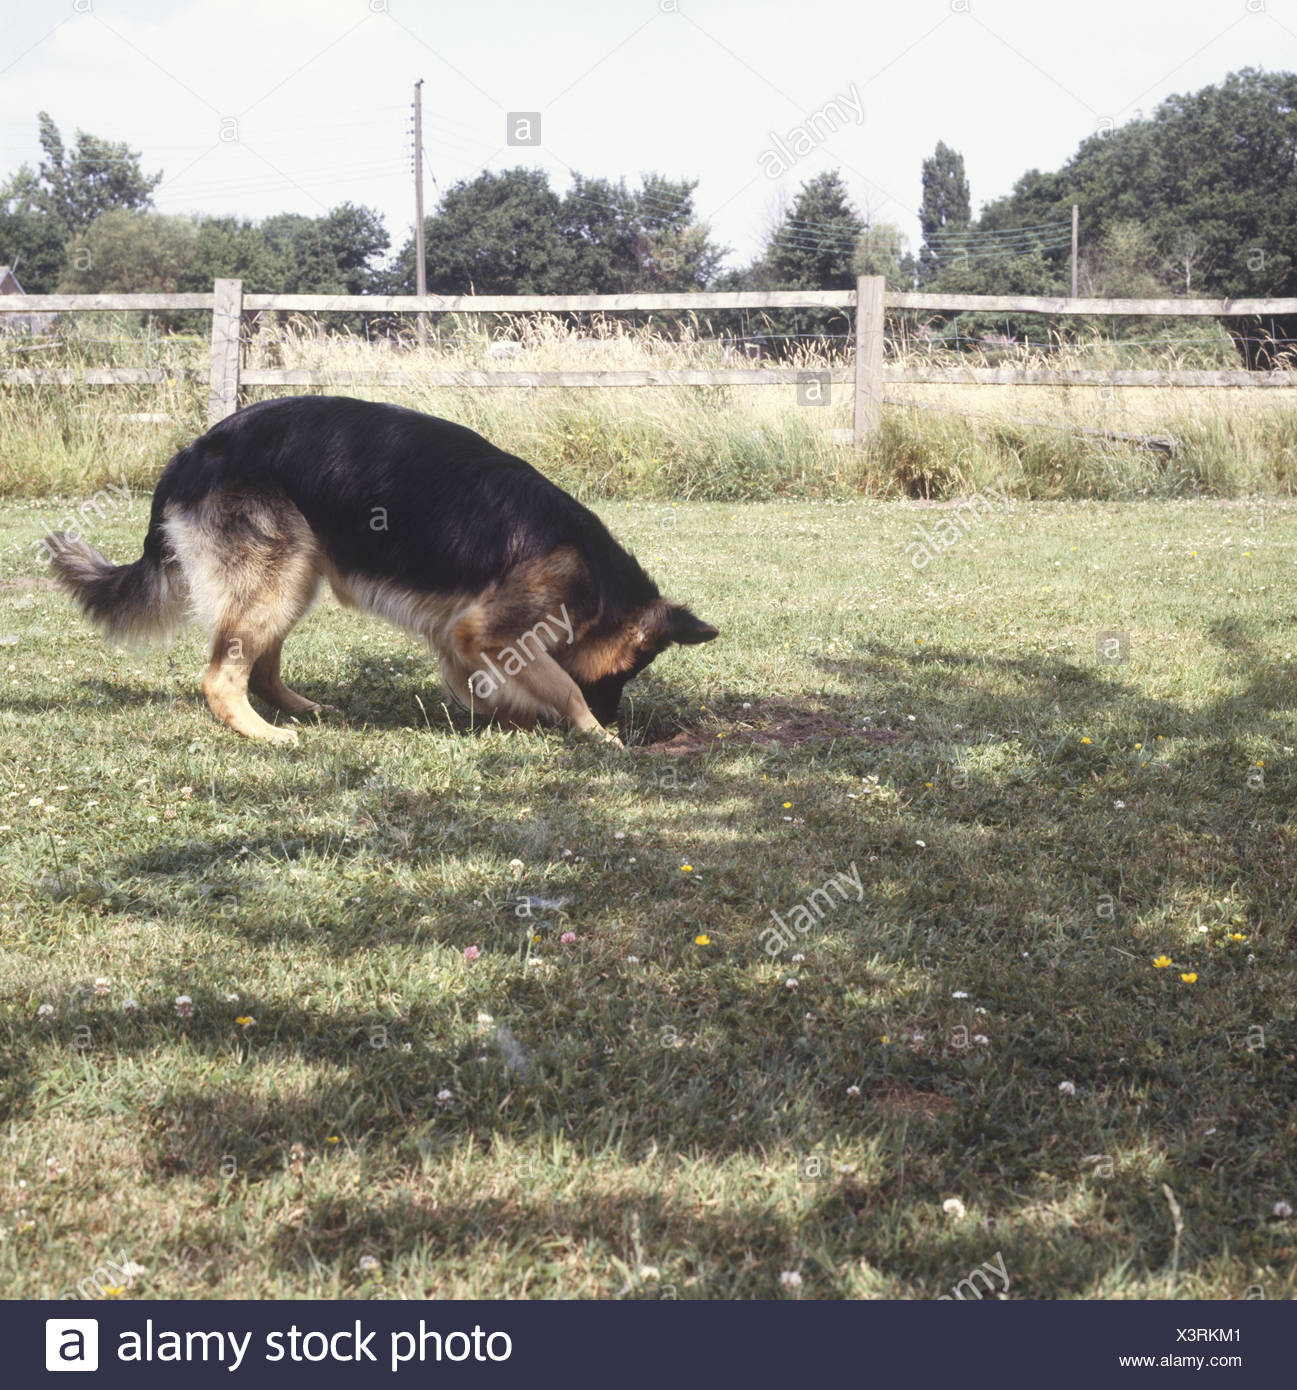 German Shepherd dog (Canis familiaris) digging hole in lawn, side view - Stock Image